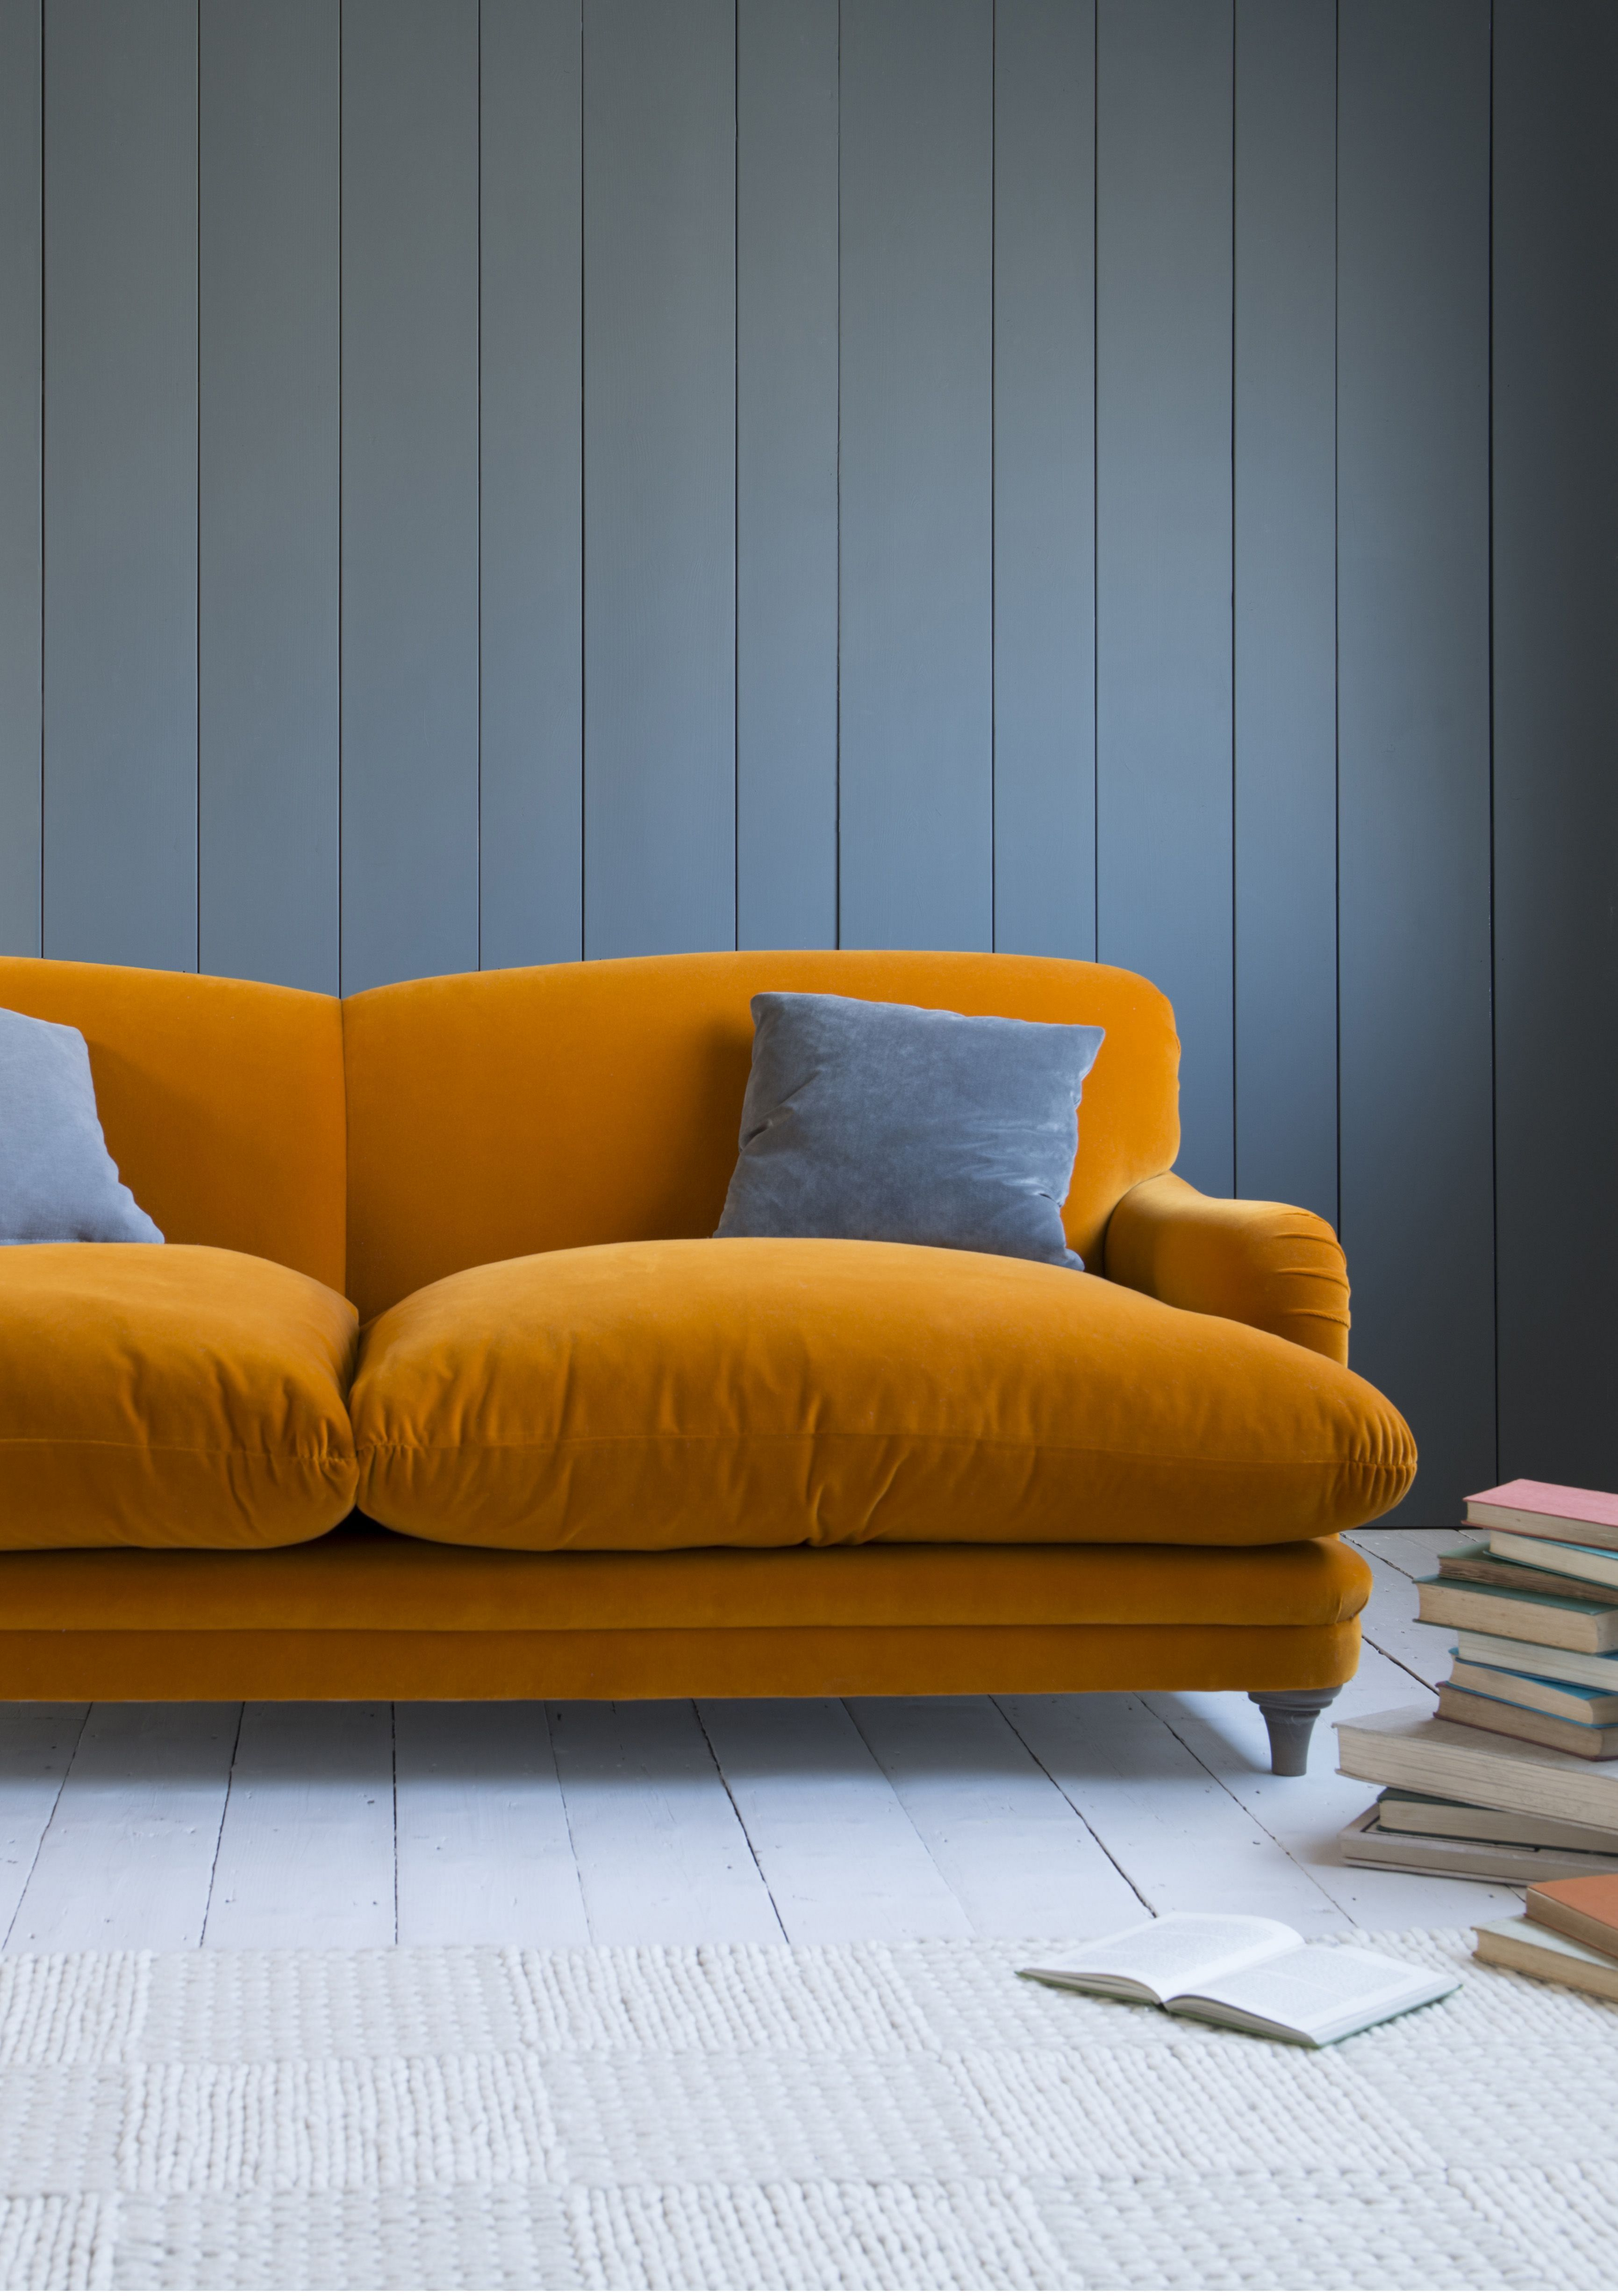 Brilliant 30 Charming Living Room Design With Orange Color Themes Https Decoor Net 30 Charming Living Room Des Living Room Sofa Orange Sofa Contemporary Sofa #orange #sofa #living #room